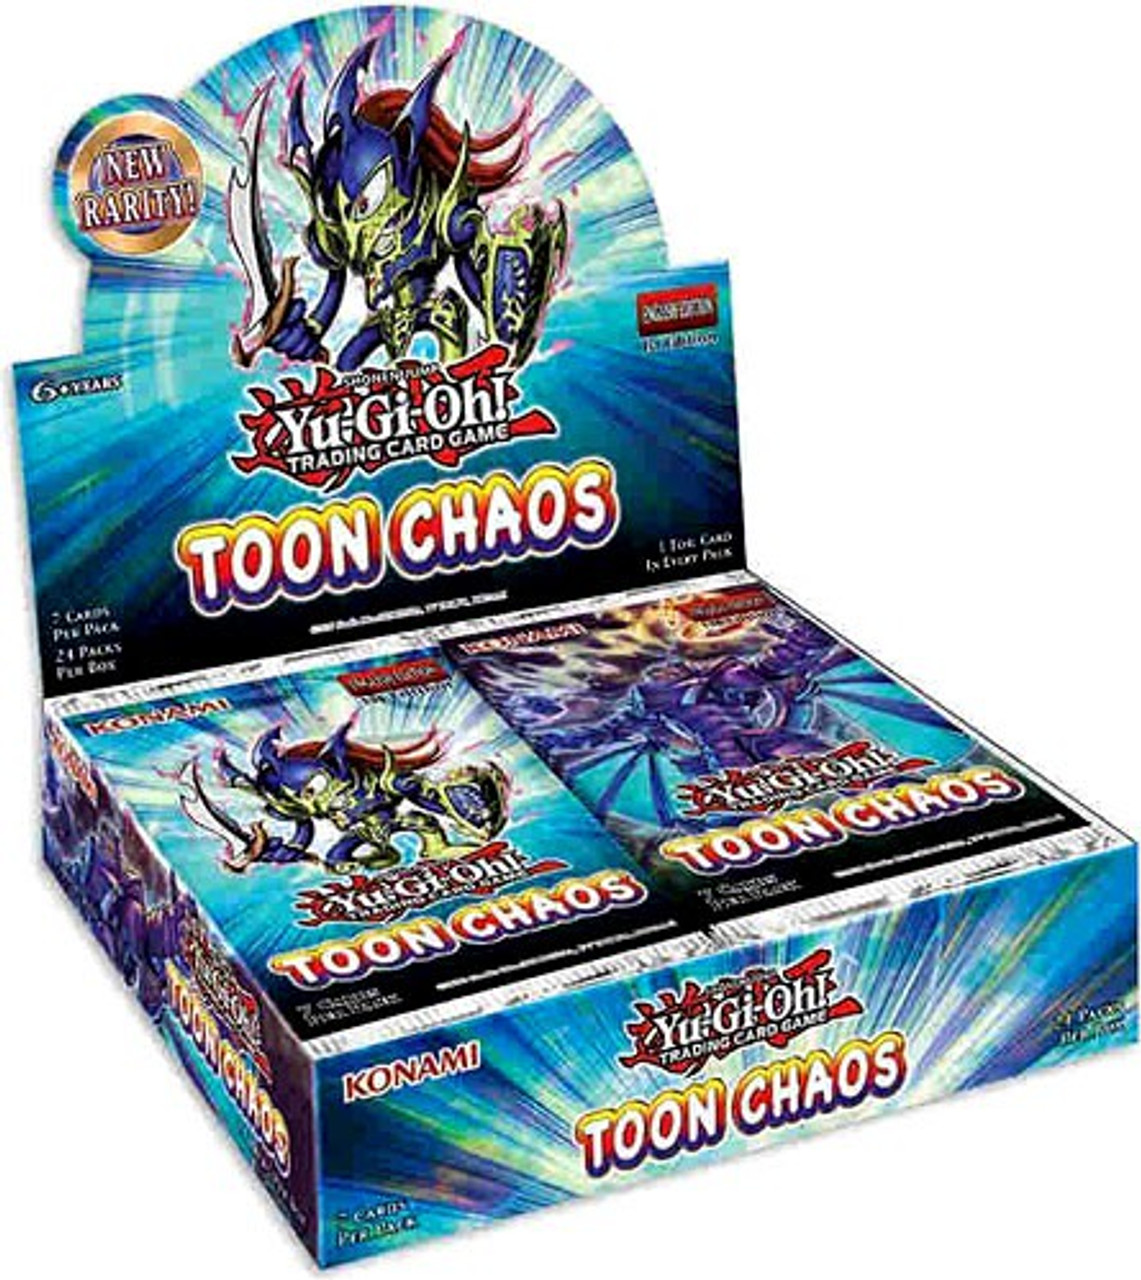 1 Yugioh BOOSTER PACK FACTORY SEALED RANDOM PACK BOOSTER COLLECTION ALL SETS